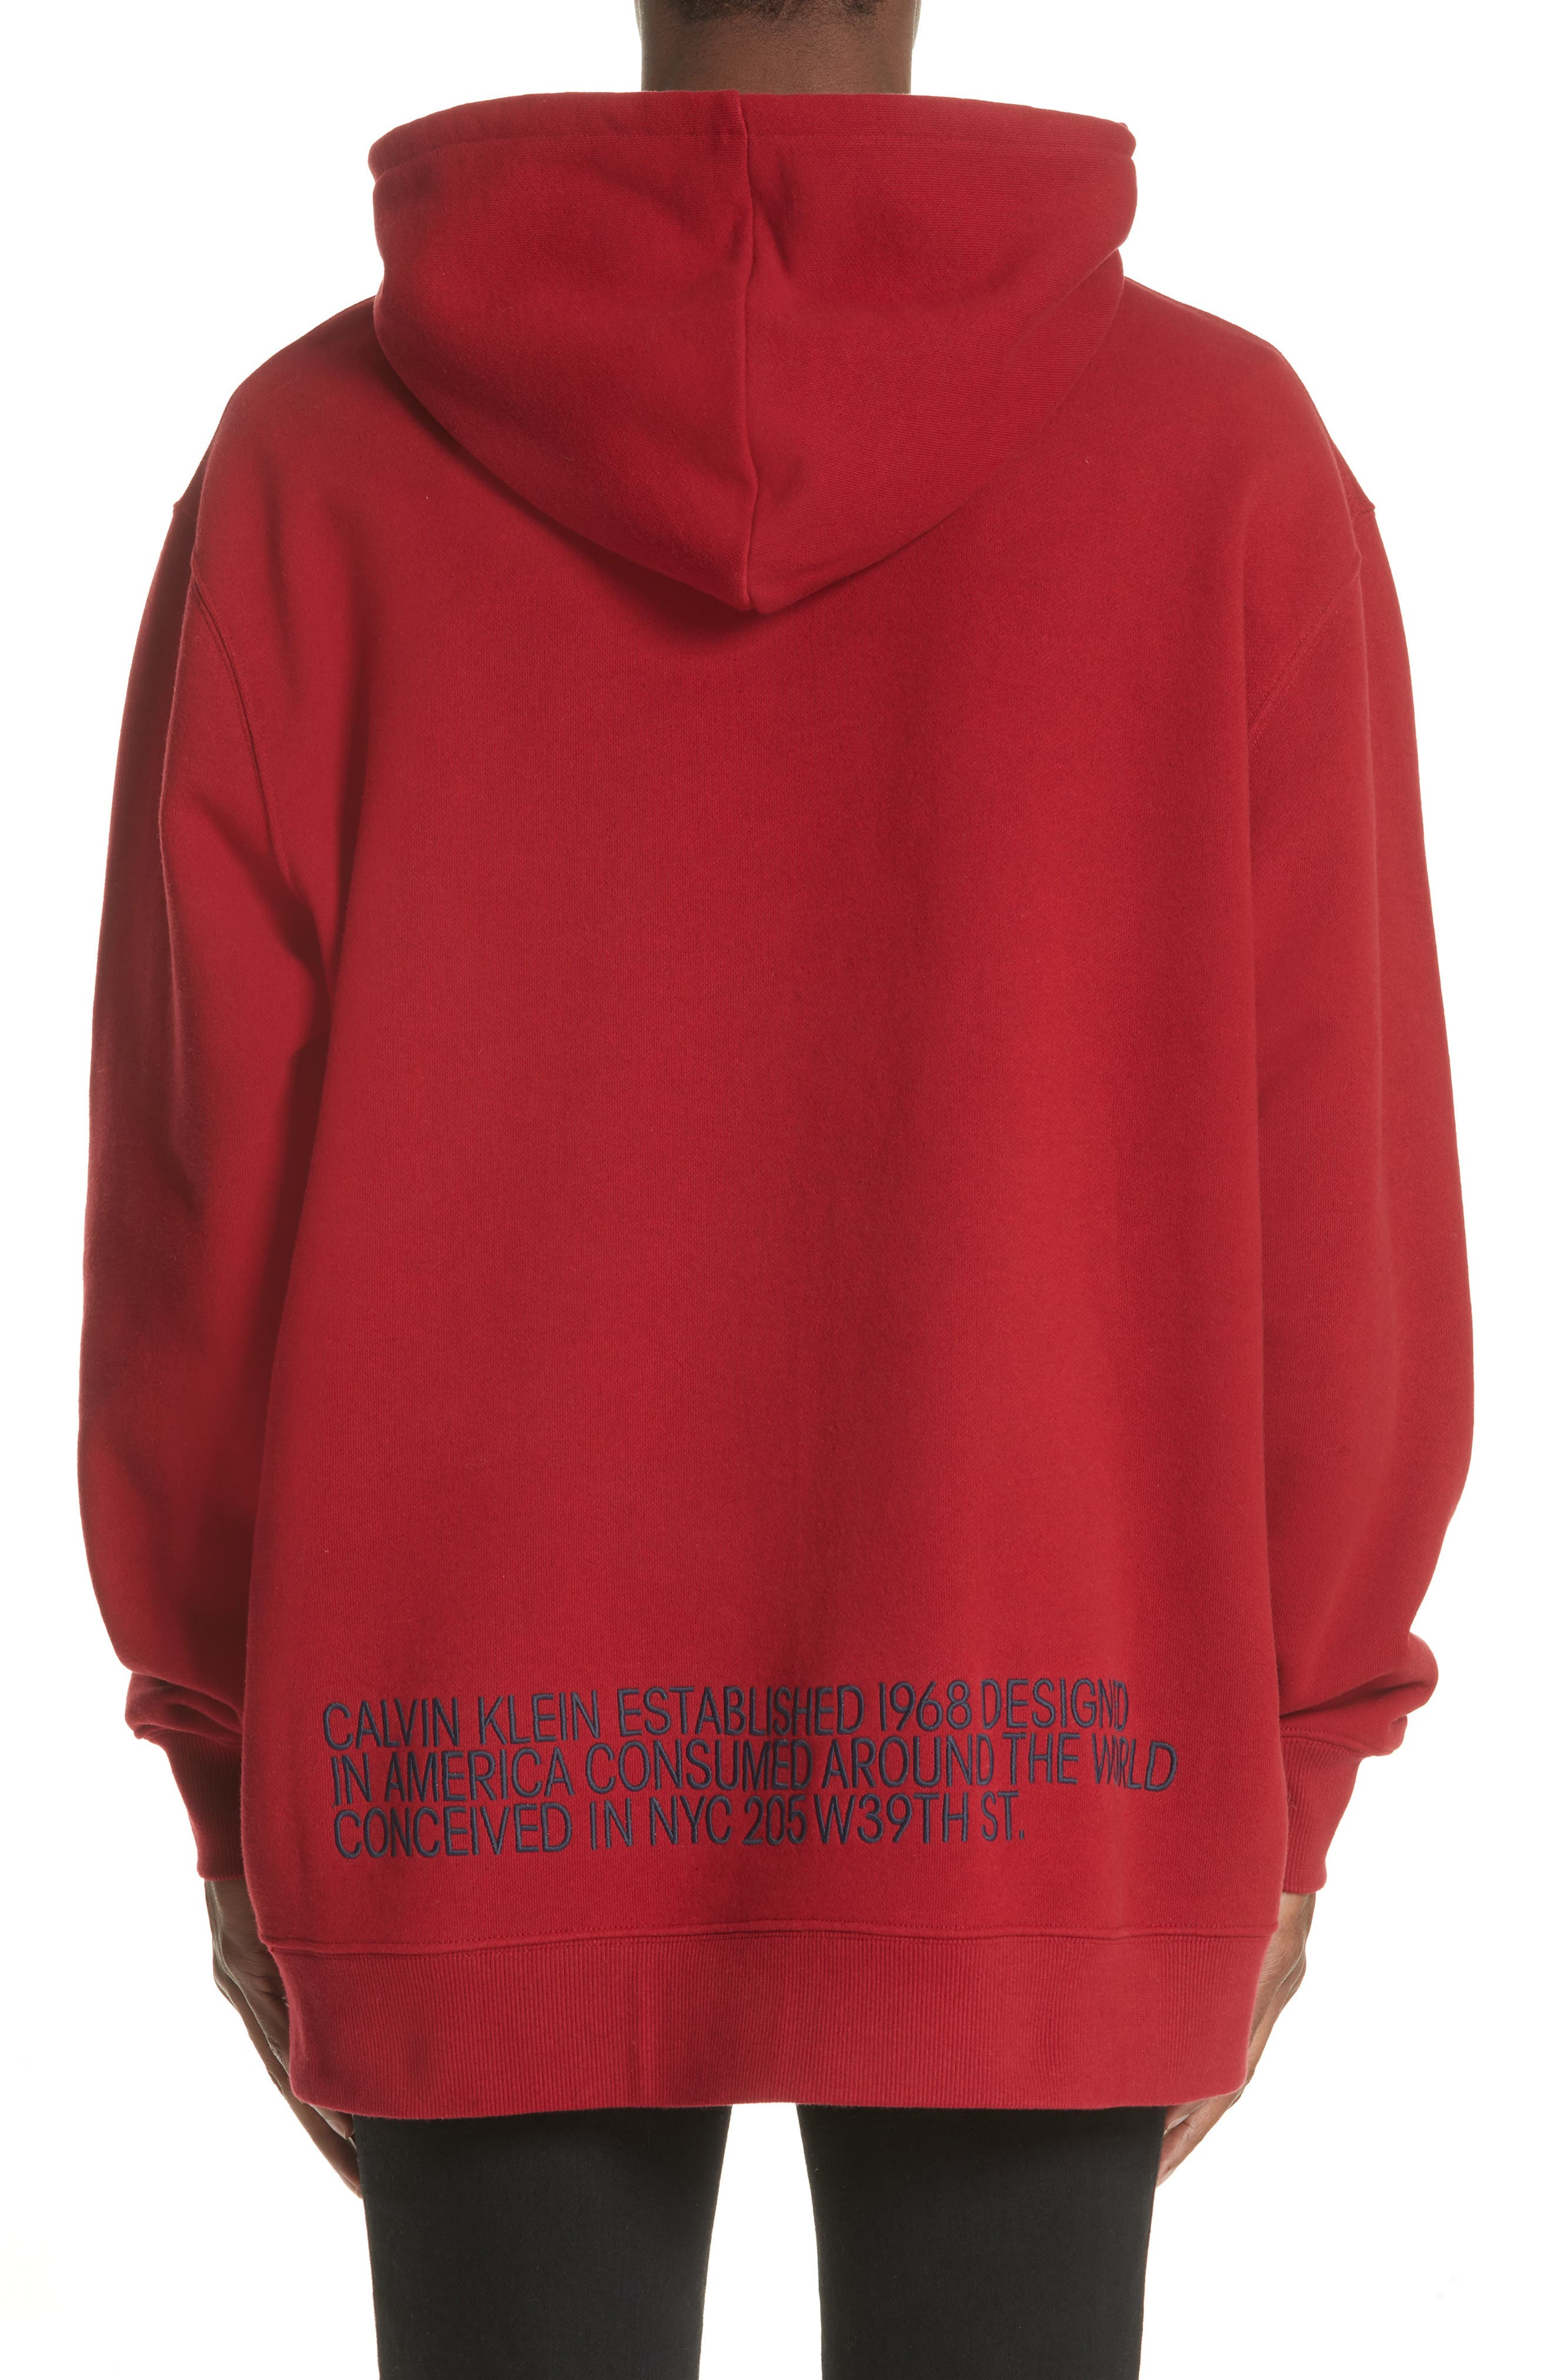 CALVIN KLEIN 205W39NYC,                             Oversize Hoodie,                             Alternate thumbnail 2, color,                             602